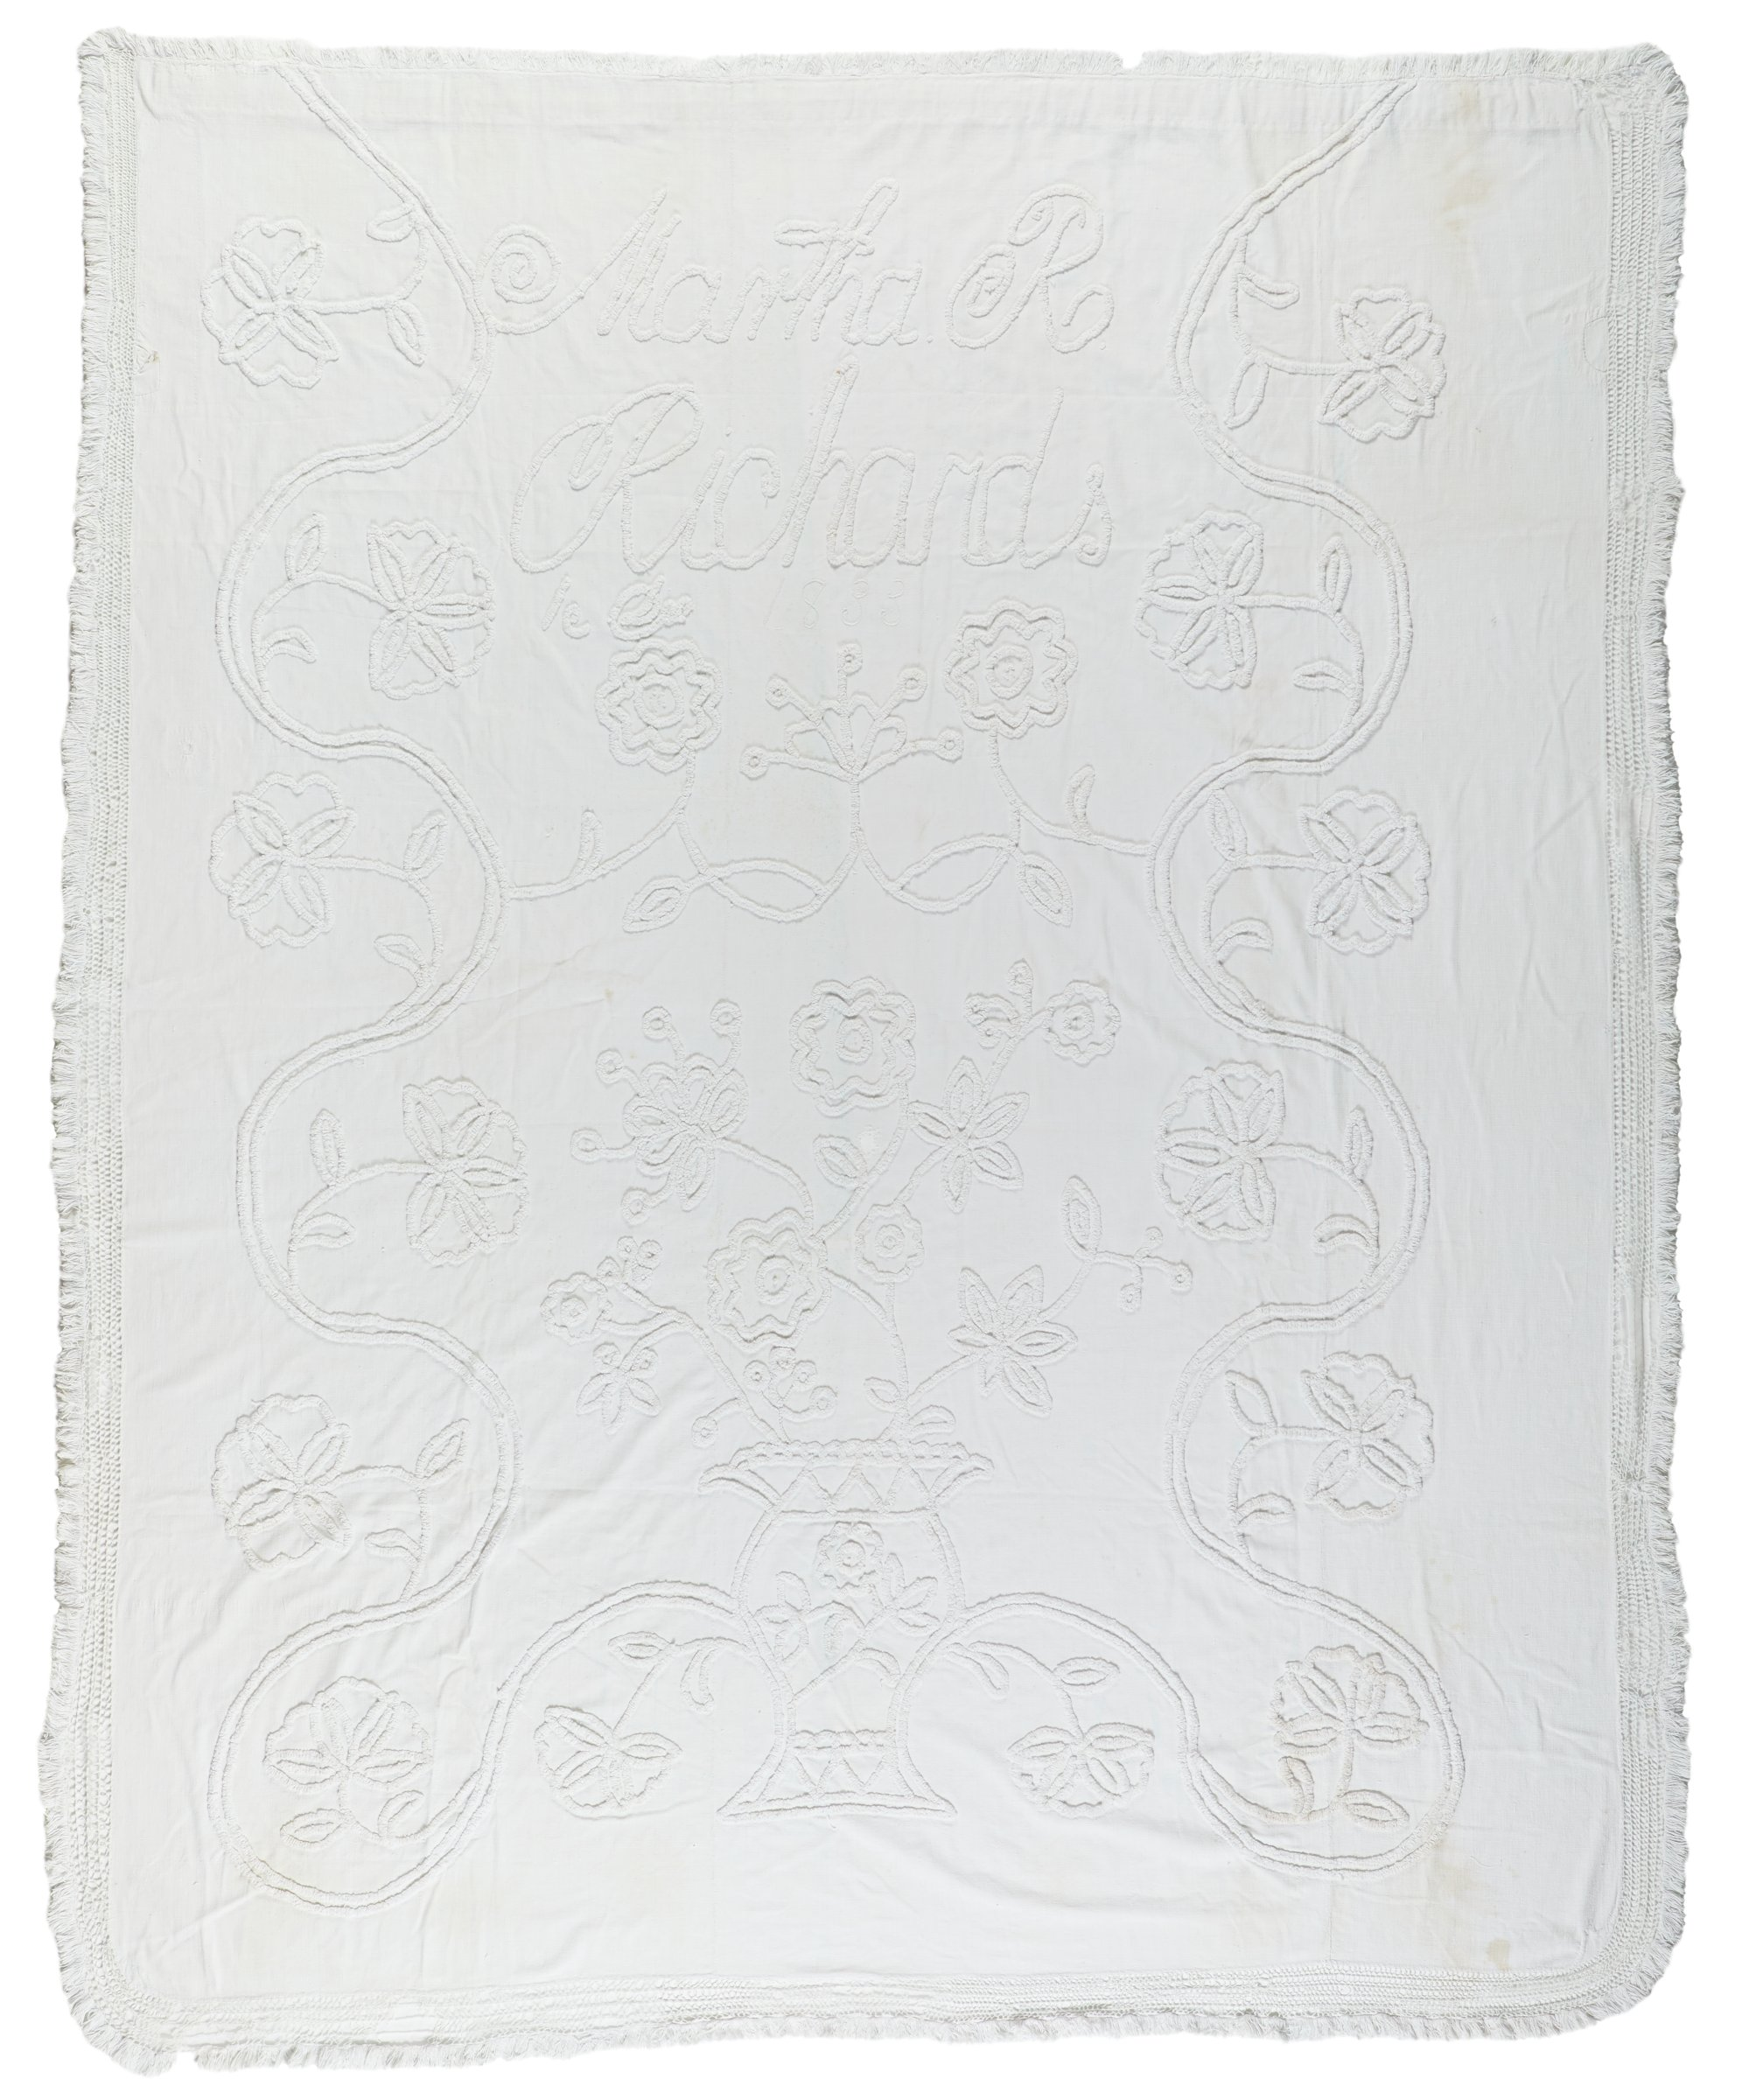 """Large unbleached plain-weave white cotton bedspread or coverlet made up of three vertically oriented panels stitched together and decorated with white candlewick embroidered floral motifs, at the top in large letters the signature and date """" Martha R. Richards / 1833,"""" below the signature an urn with flowers and vines at bottom center with flowers filling the central portion of the coverlet and vines snaking along the left and right edges with flowers emanating from them, the two long sides and lower edge finished with a knotted border and fringe of unbleached cotton, the top edge is finished with a border of cotton fringing."""